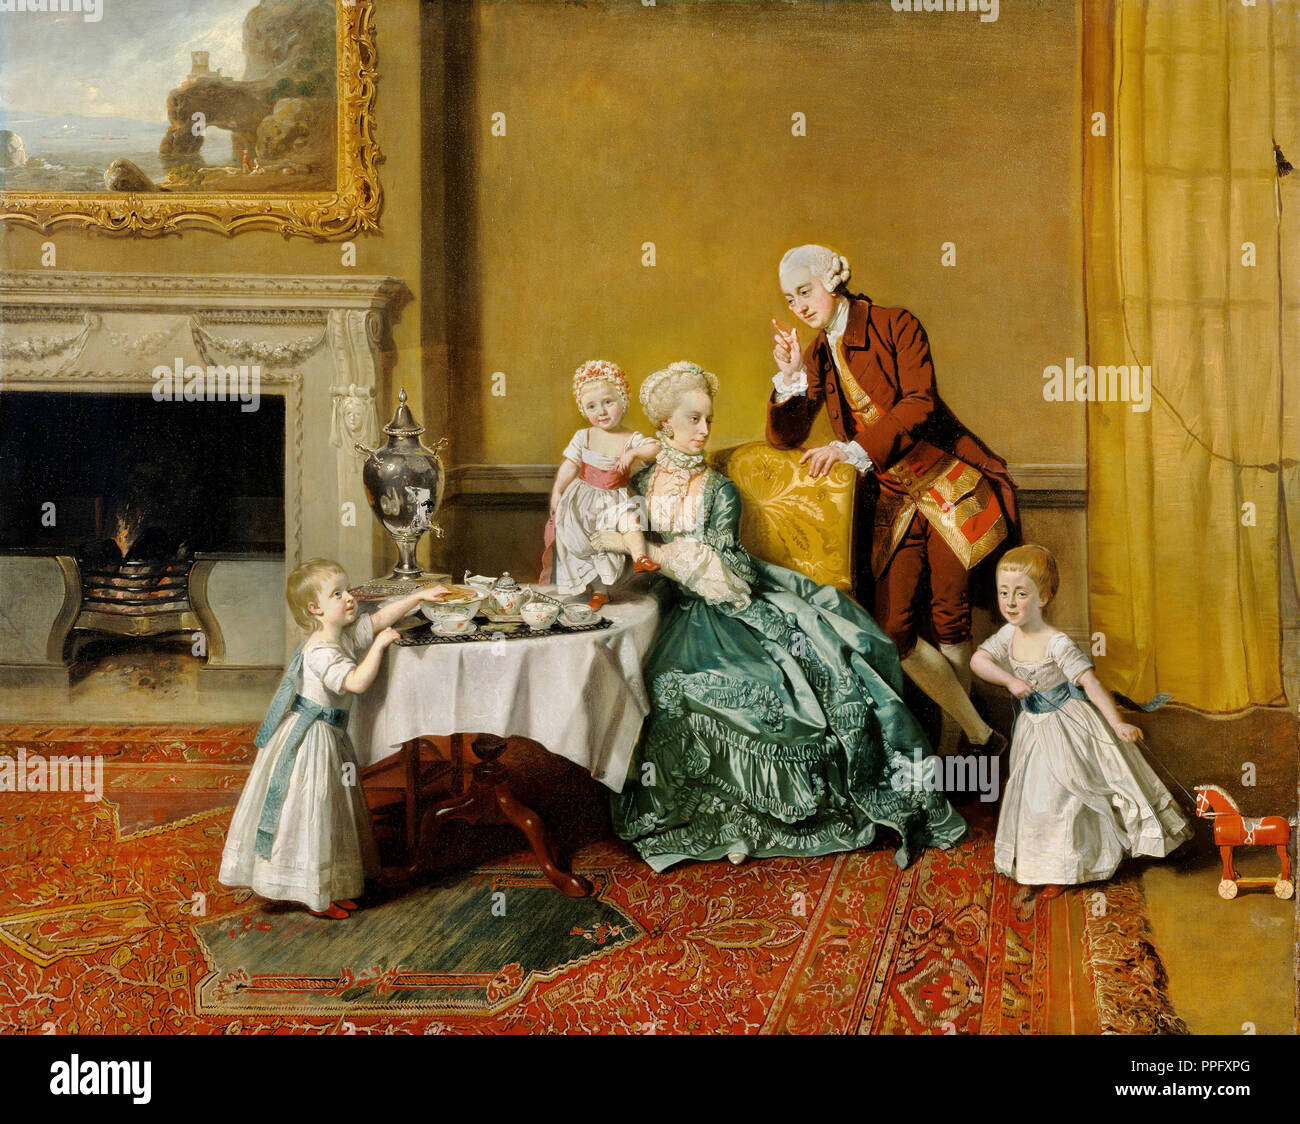 Johann Zoffany - John, Fourteenth Lord Willoughby de Broke, and his Family. Circa 1766. Oil on canvas. The J. Paul Getty Museum, Los Angeles, USA. - Stock Image